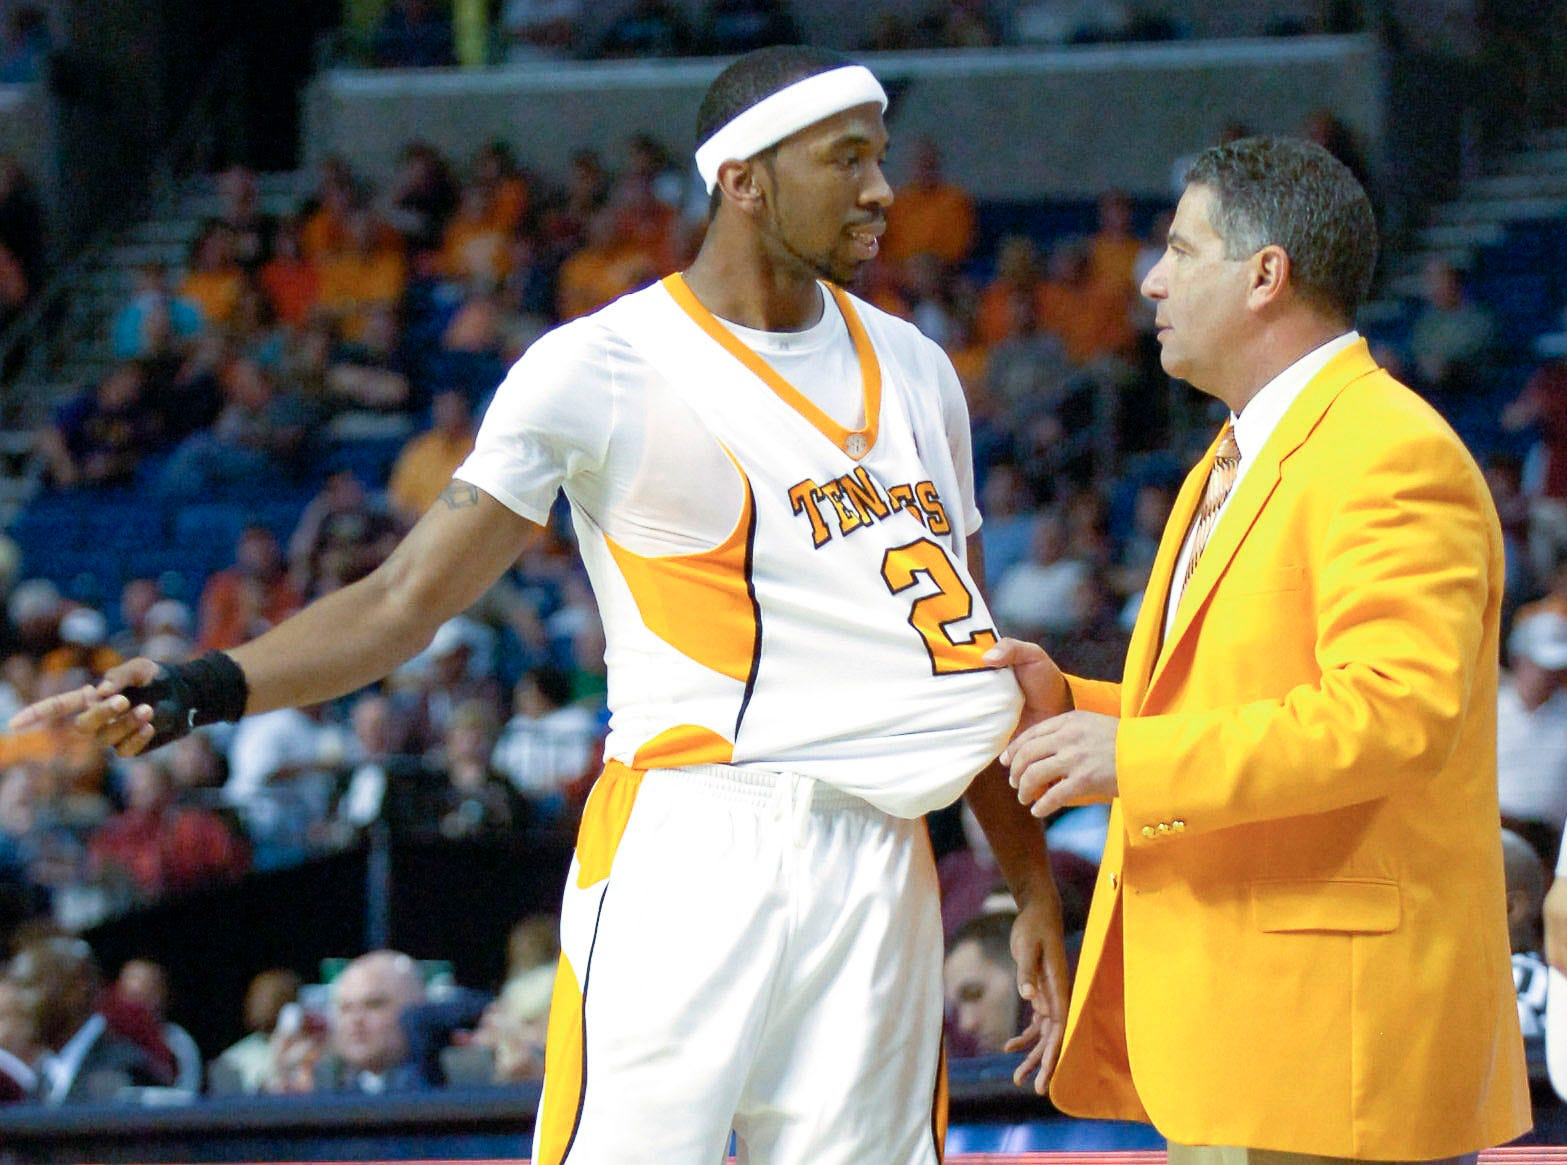 Tennessee head coach Bruce Pearl talks with Cameron Tatum during the game against Mississippi State at the 2009 SEC Tournament Championship game in Tampa, FL on Sunday. UT lost the game 64-61 in their first appearance since 1991.